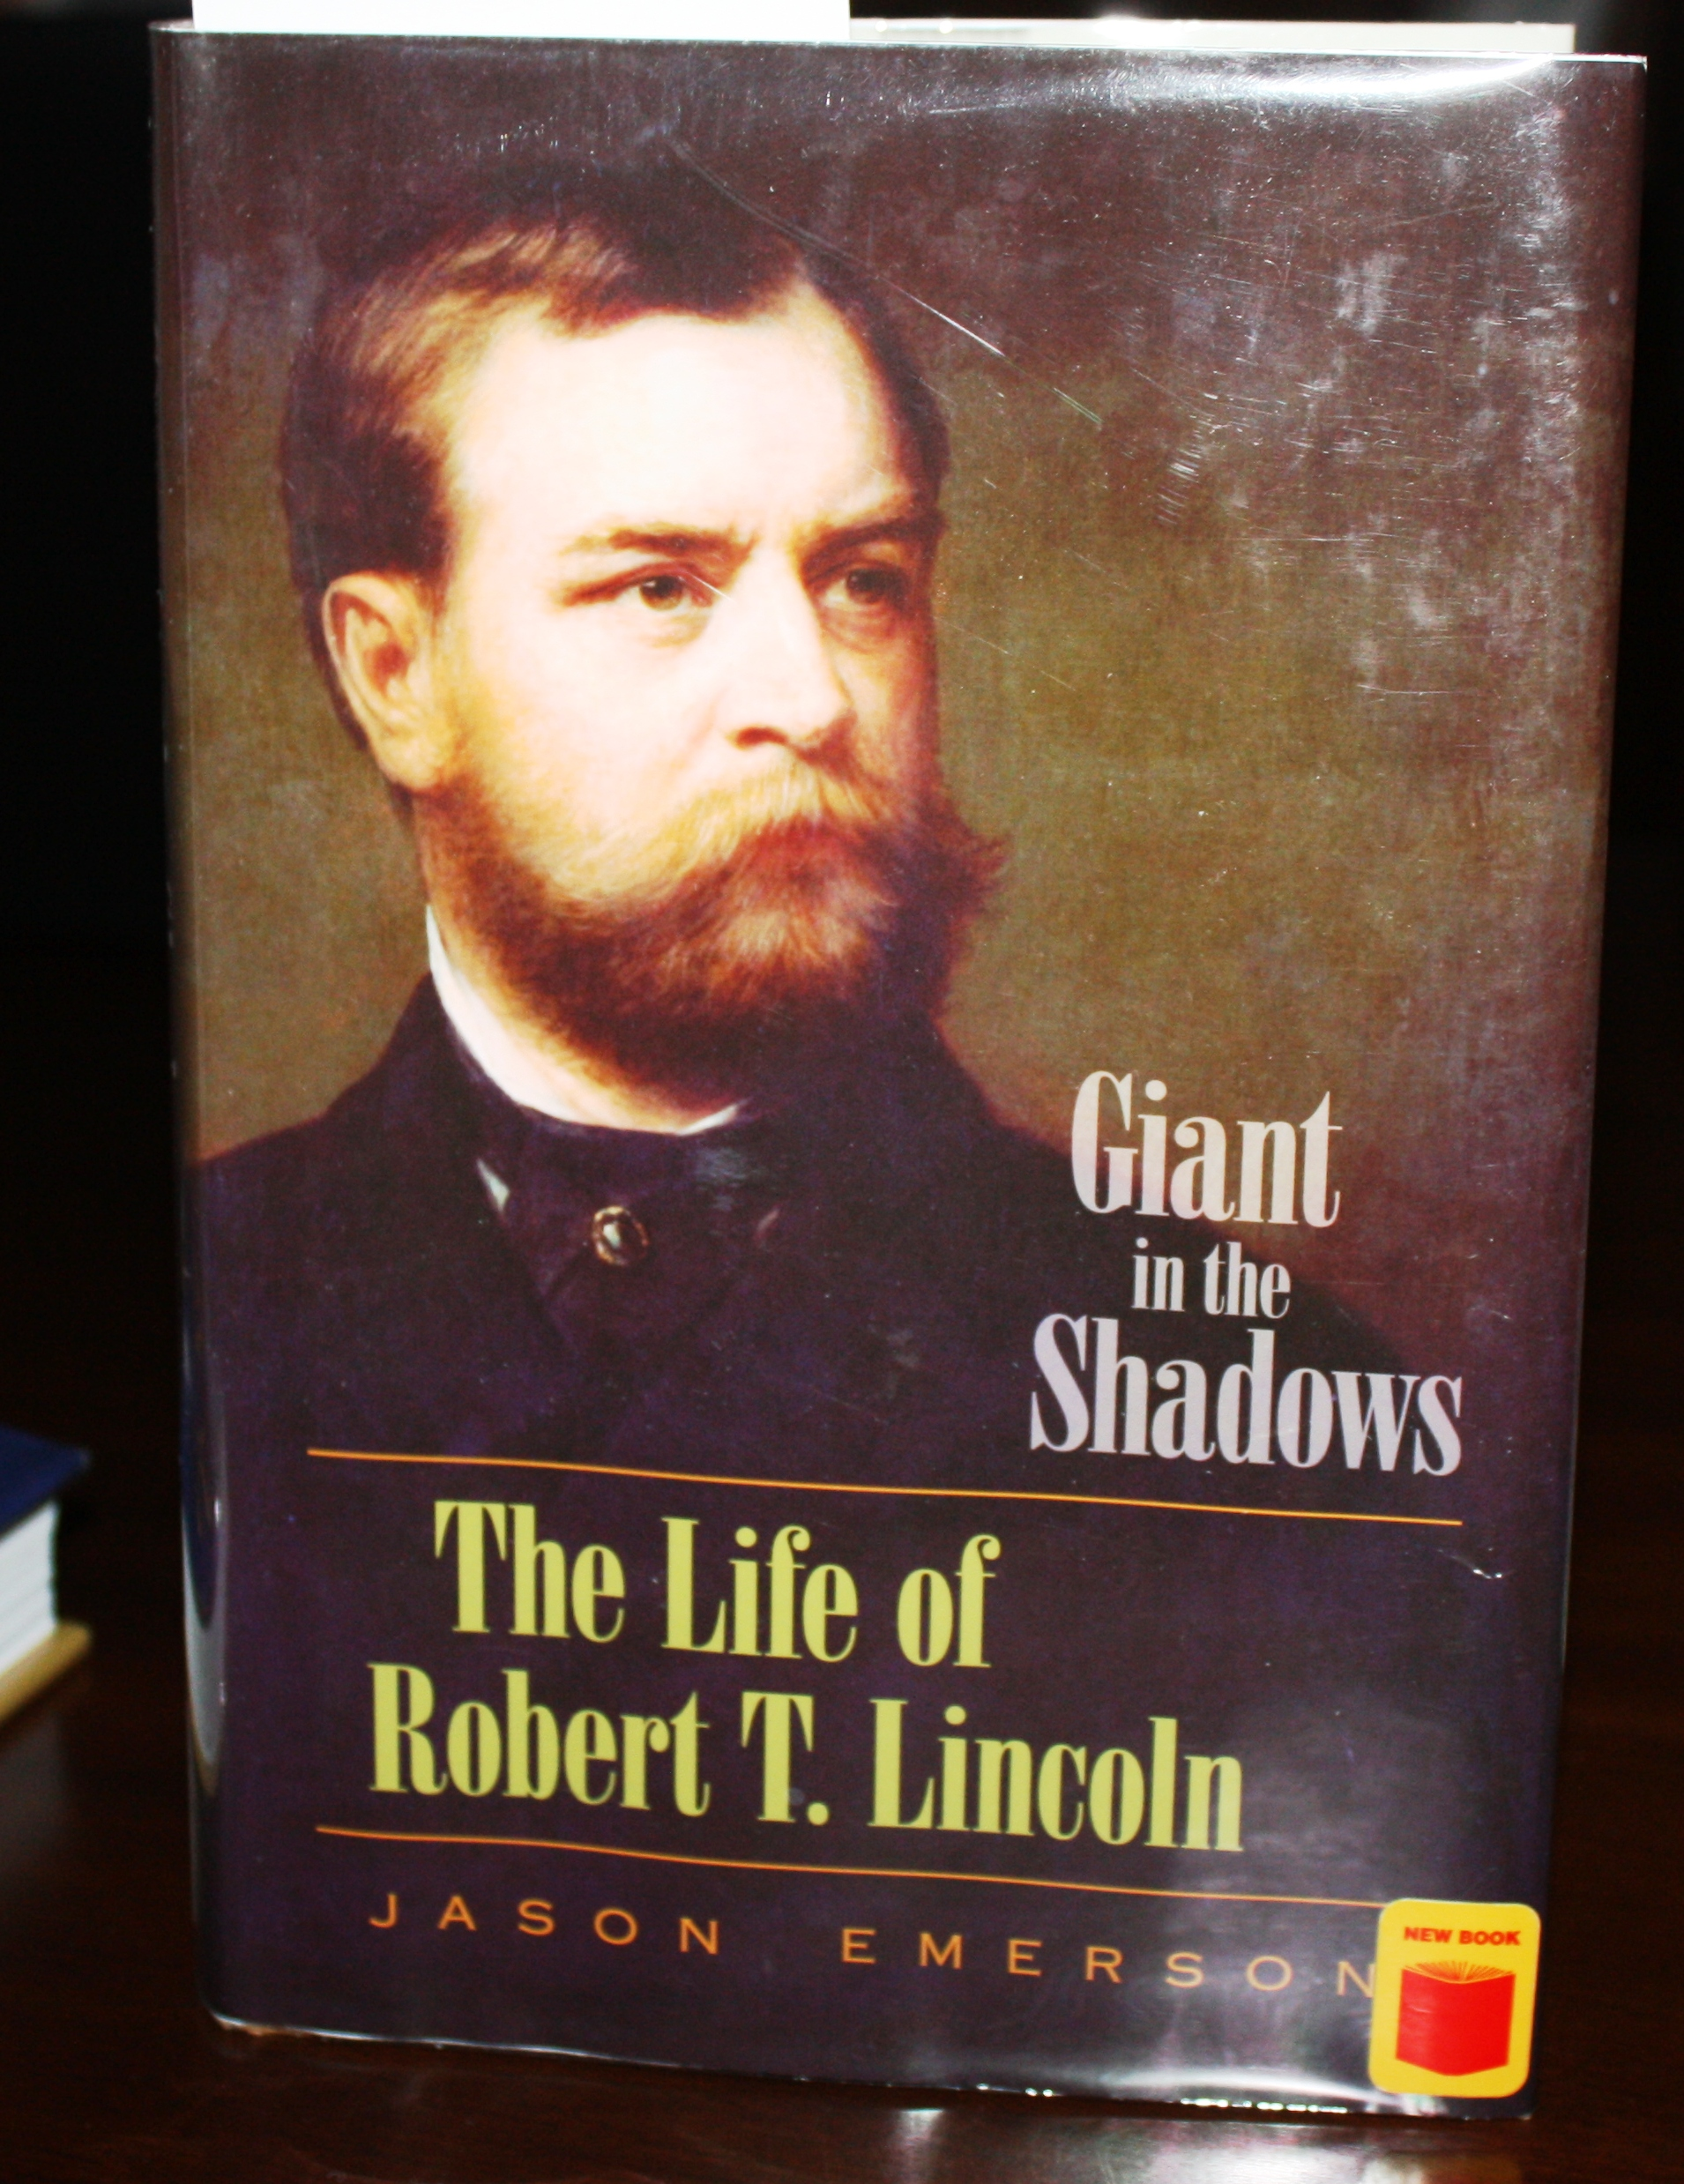 The Life of Robert T. Lincoln